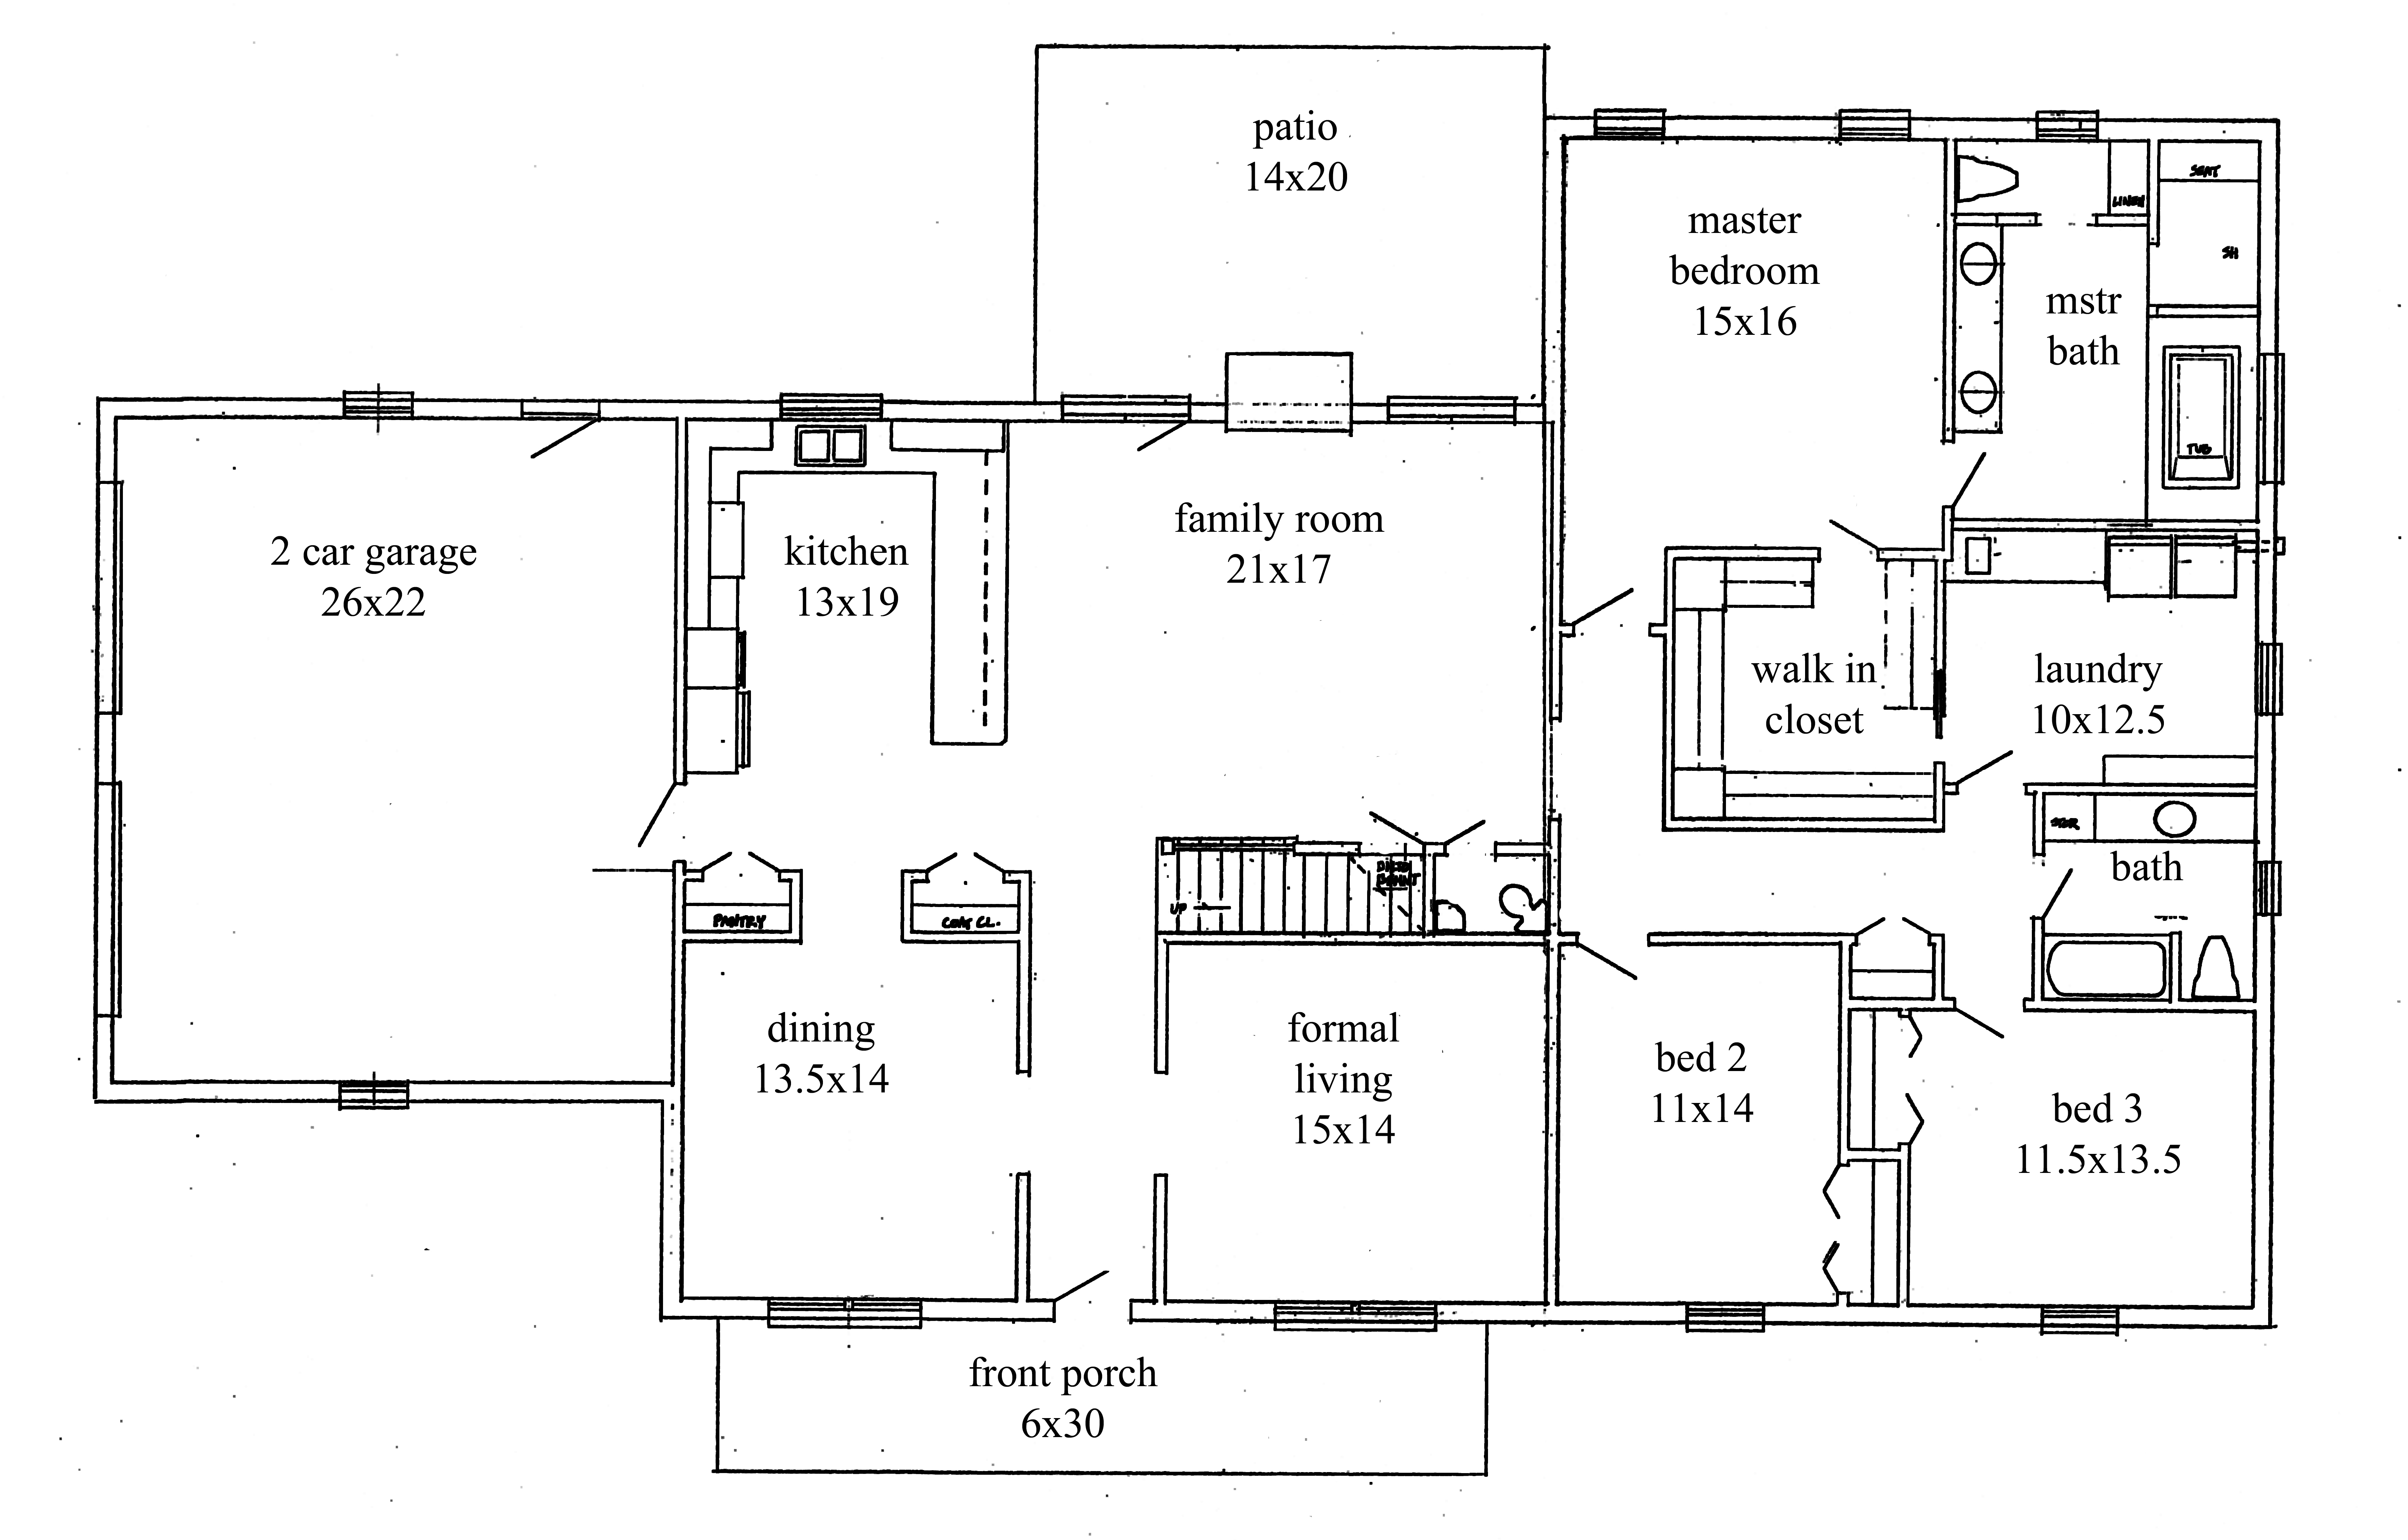 House plans new construction home floor plan Home building plans